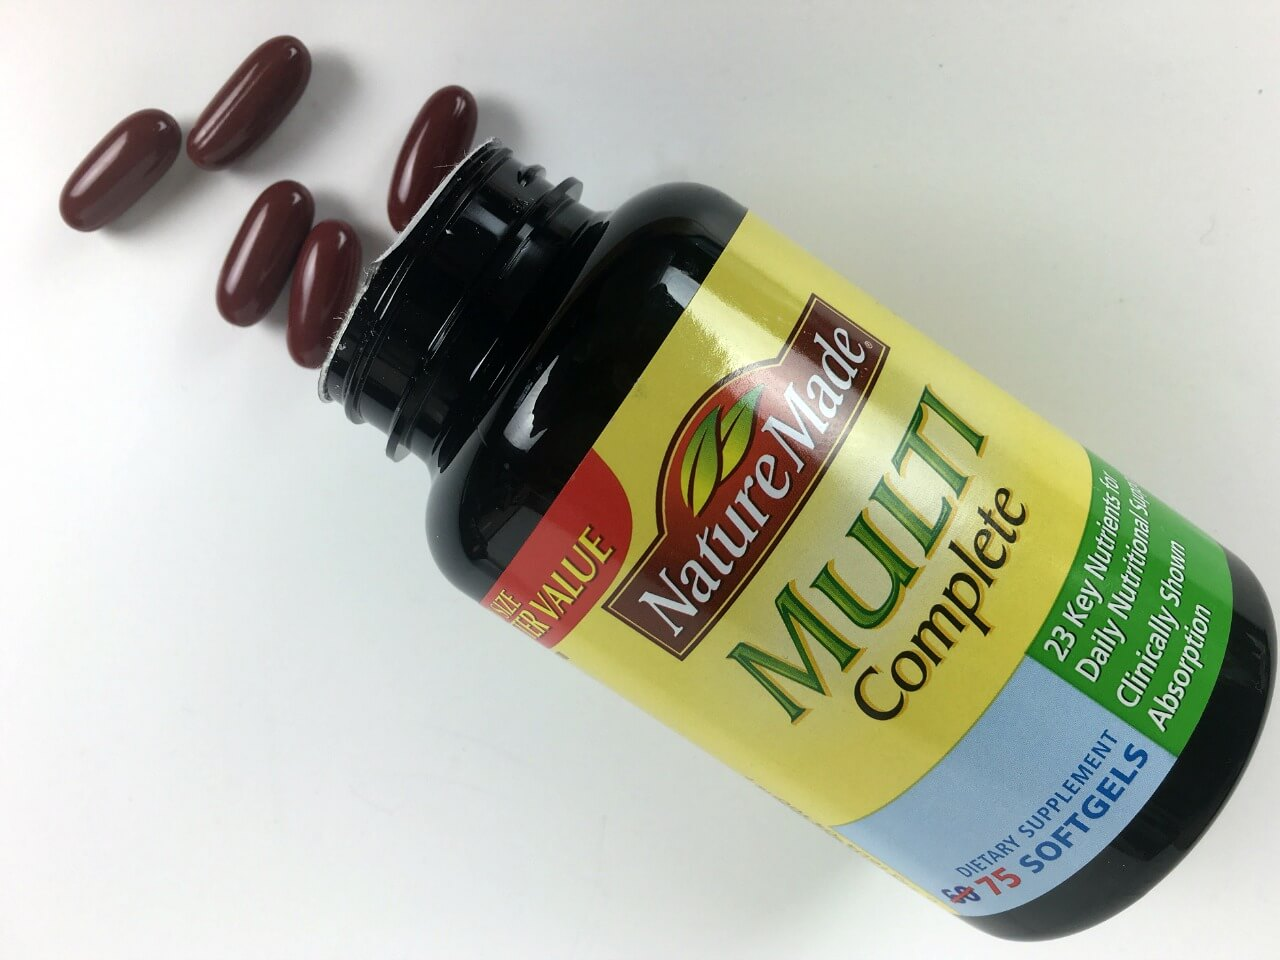 bottle of nature made multi complete supplement spilling onto counter